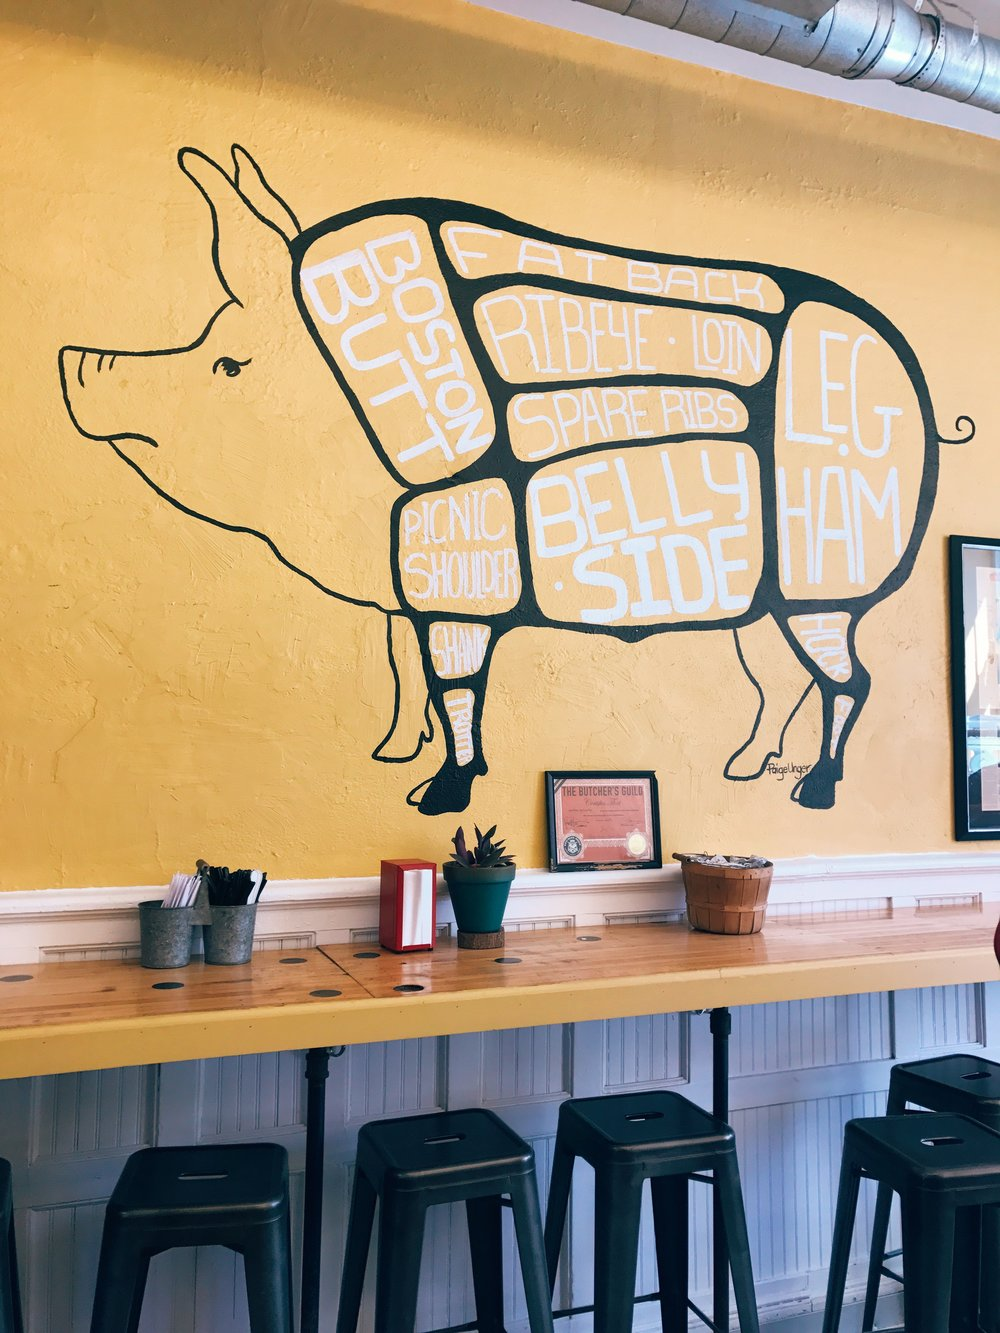 Local Pig. Photo by Anna Petrow